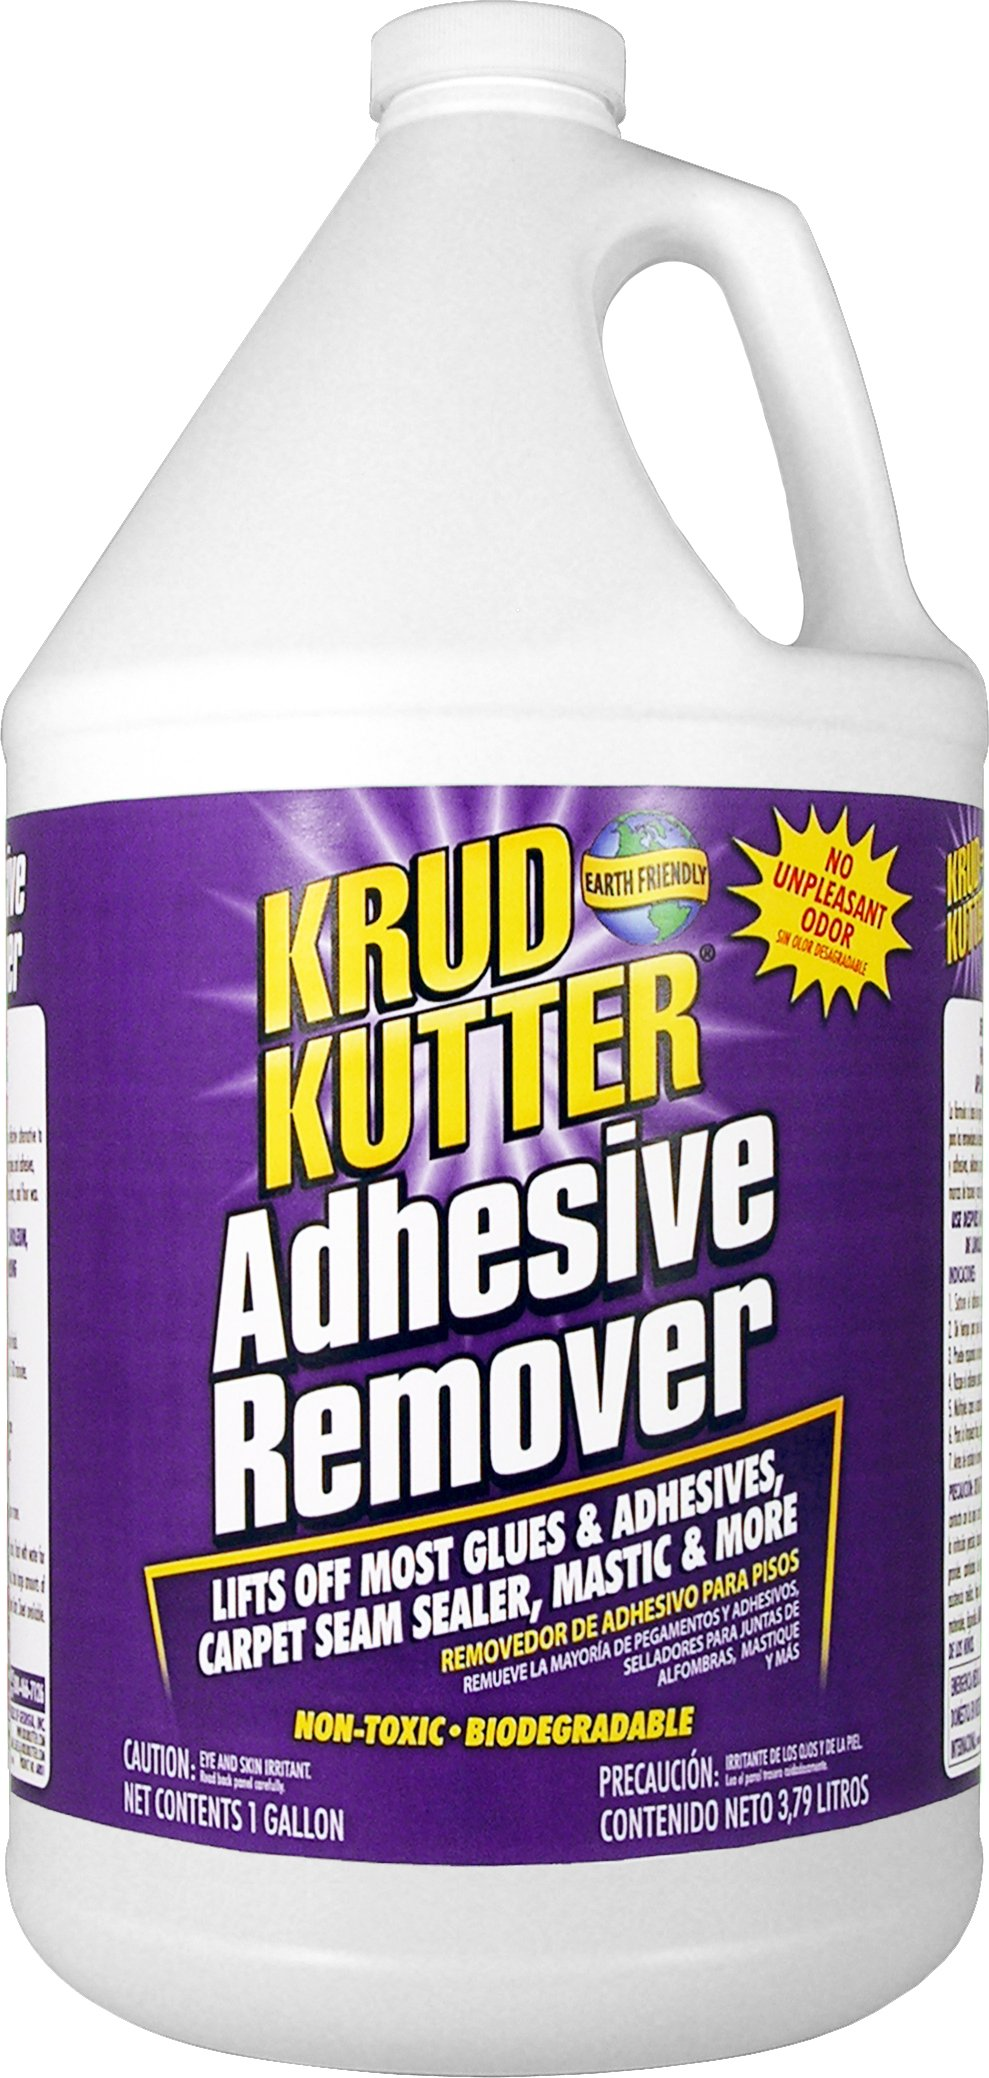 Krud Kutter AR01 Clear Adhesive Remover with Mild Odor, 1 Gallon by Krud Kutter